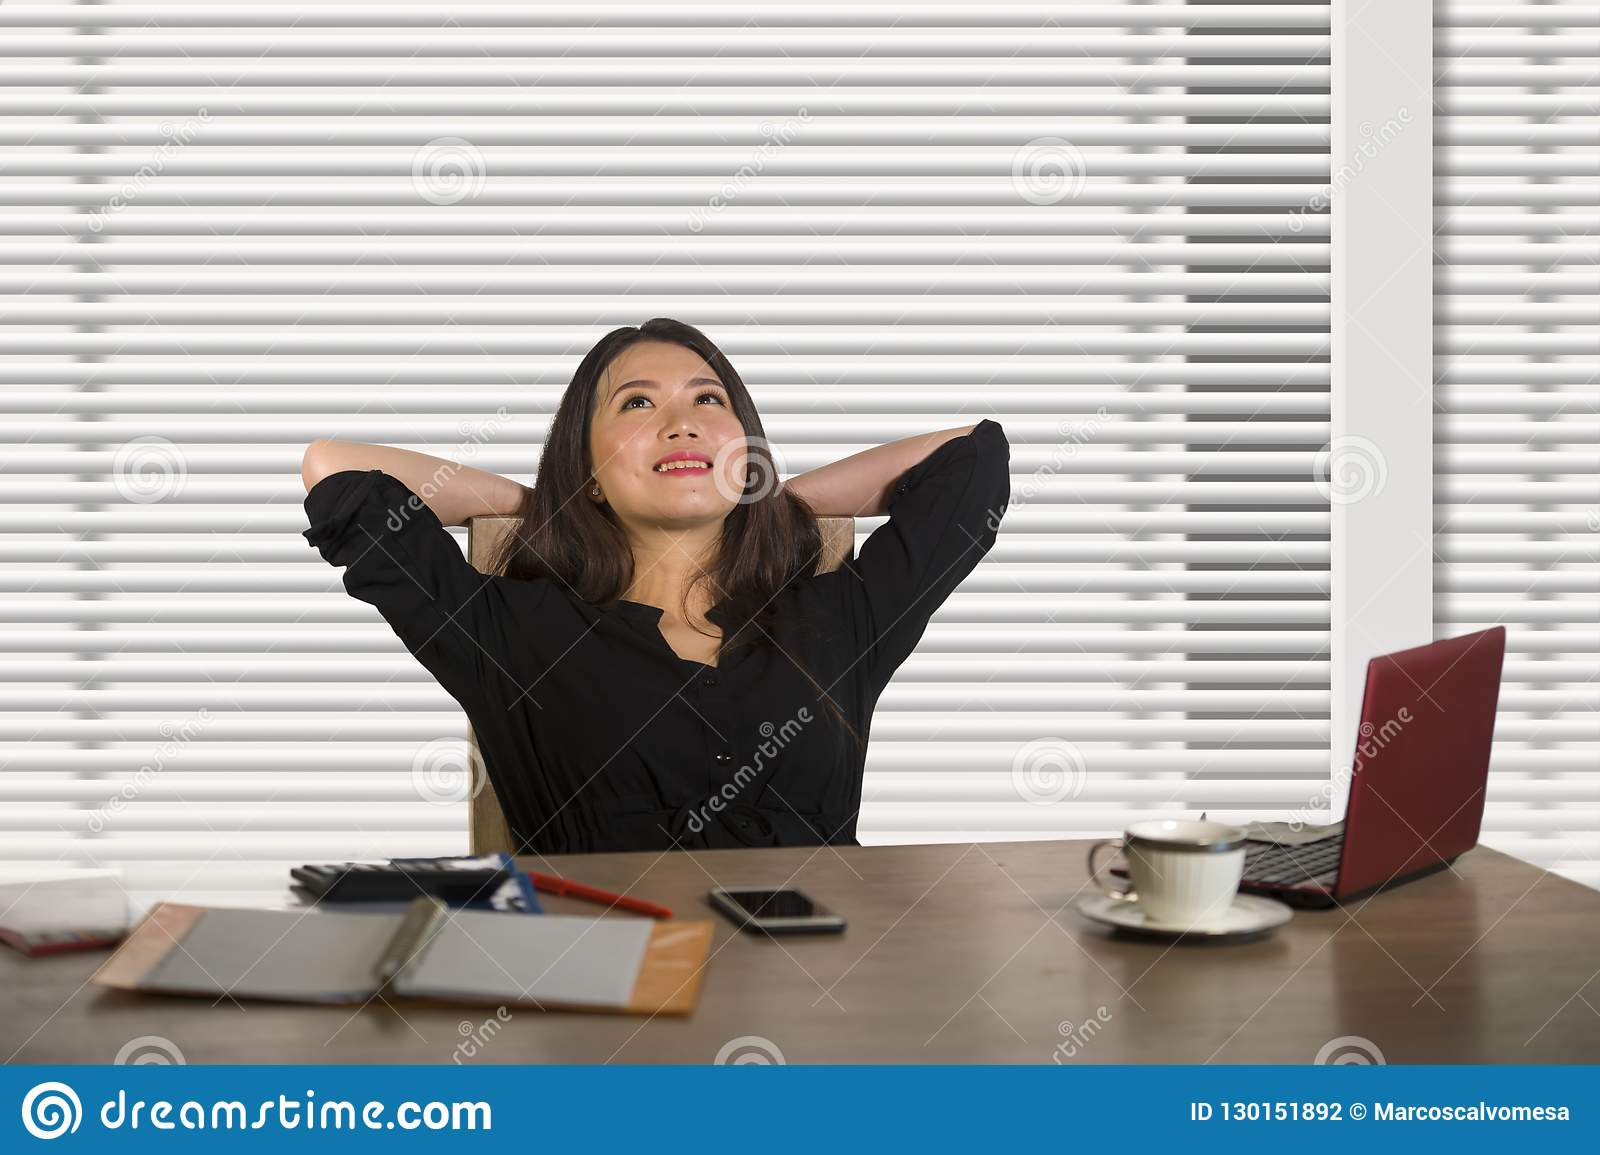 Successful Asian Korean business woman working confident at modern office computer desk in female businesswoman job smiling cheer